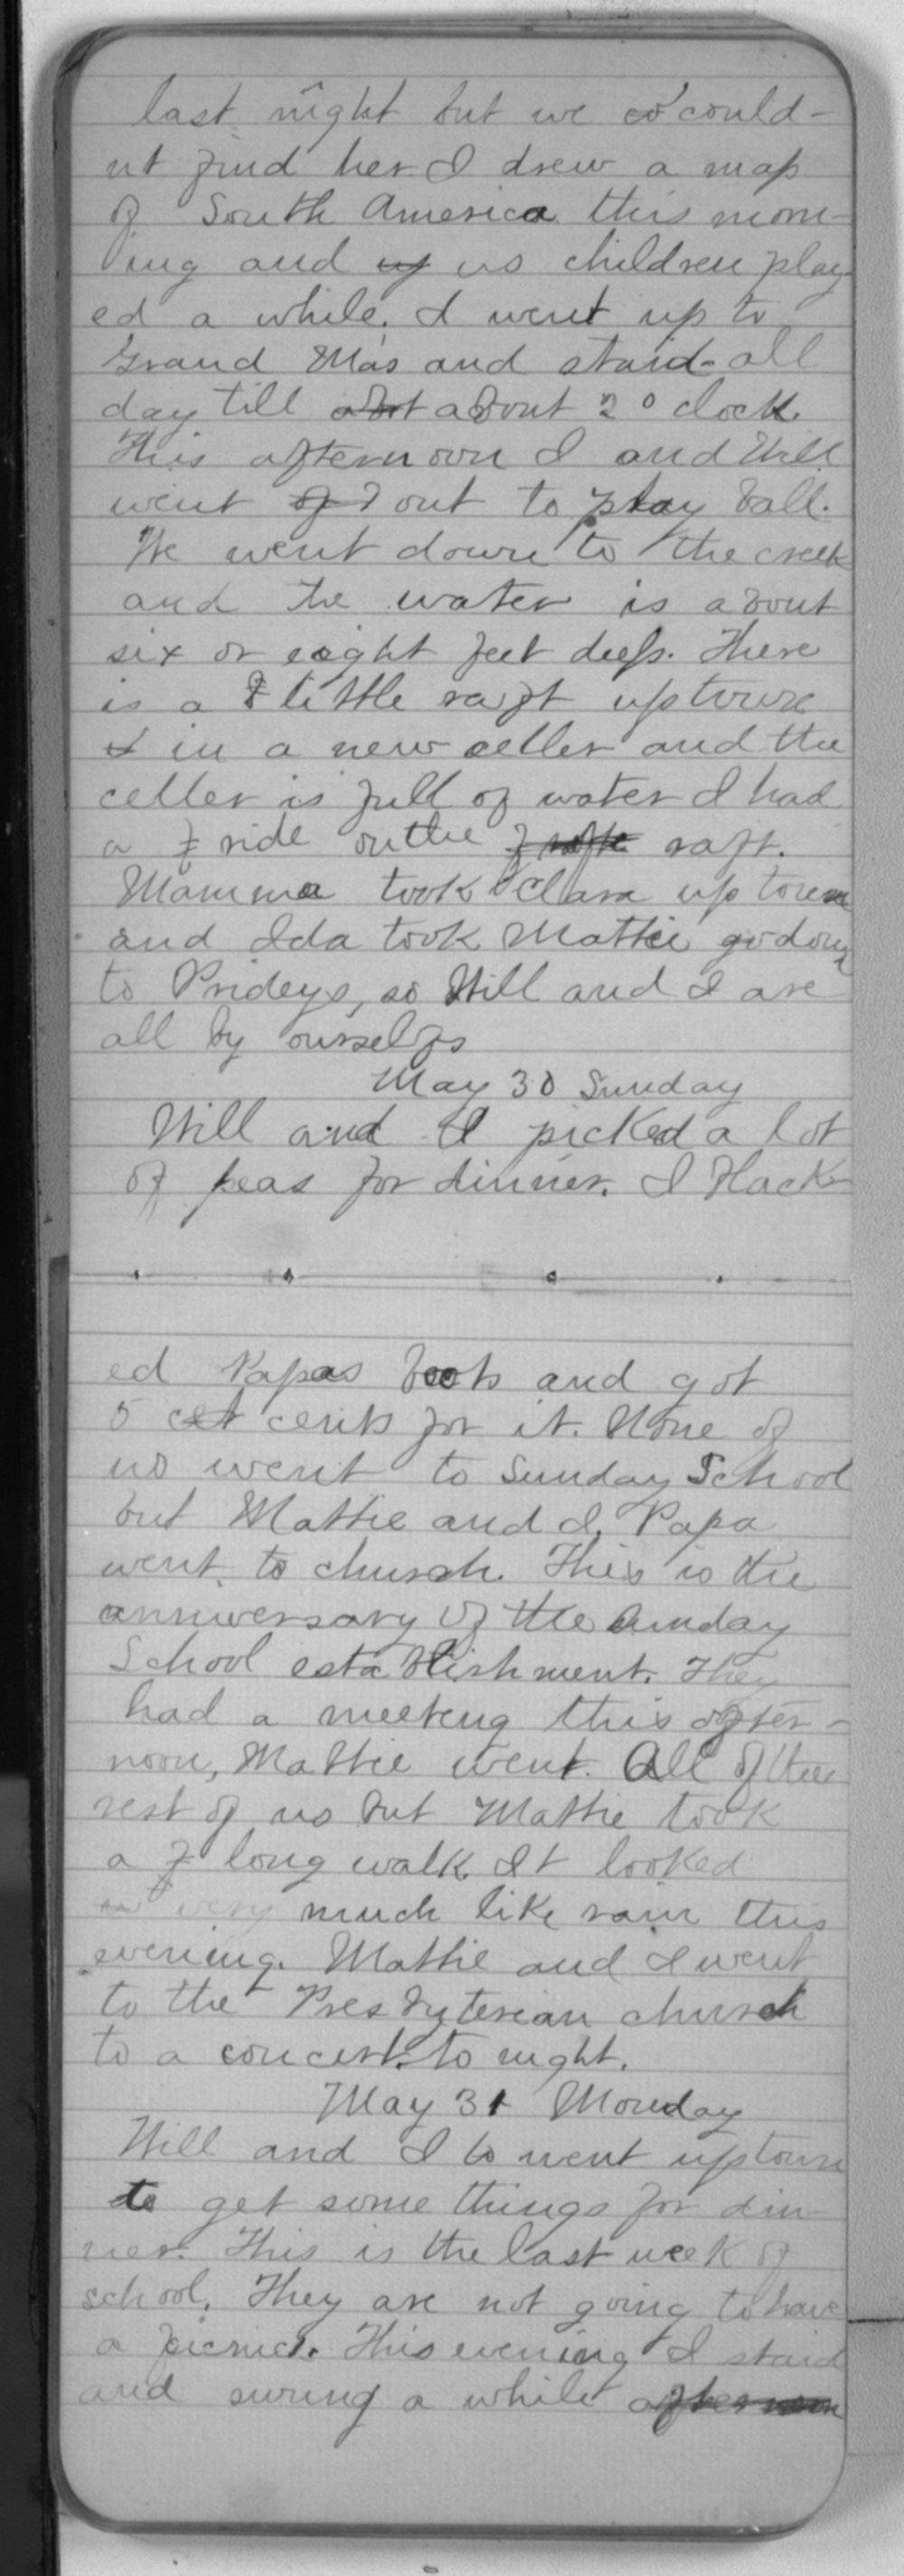 """Edward S. (""""Ned"""") Beck diaries - May 30, 1880"""